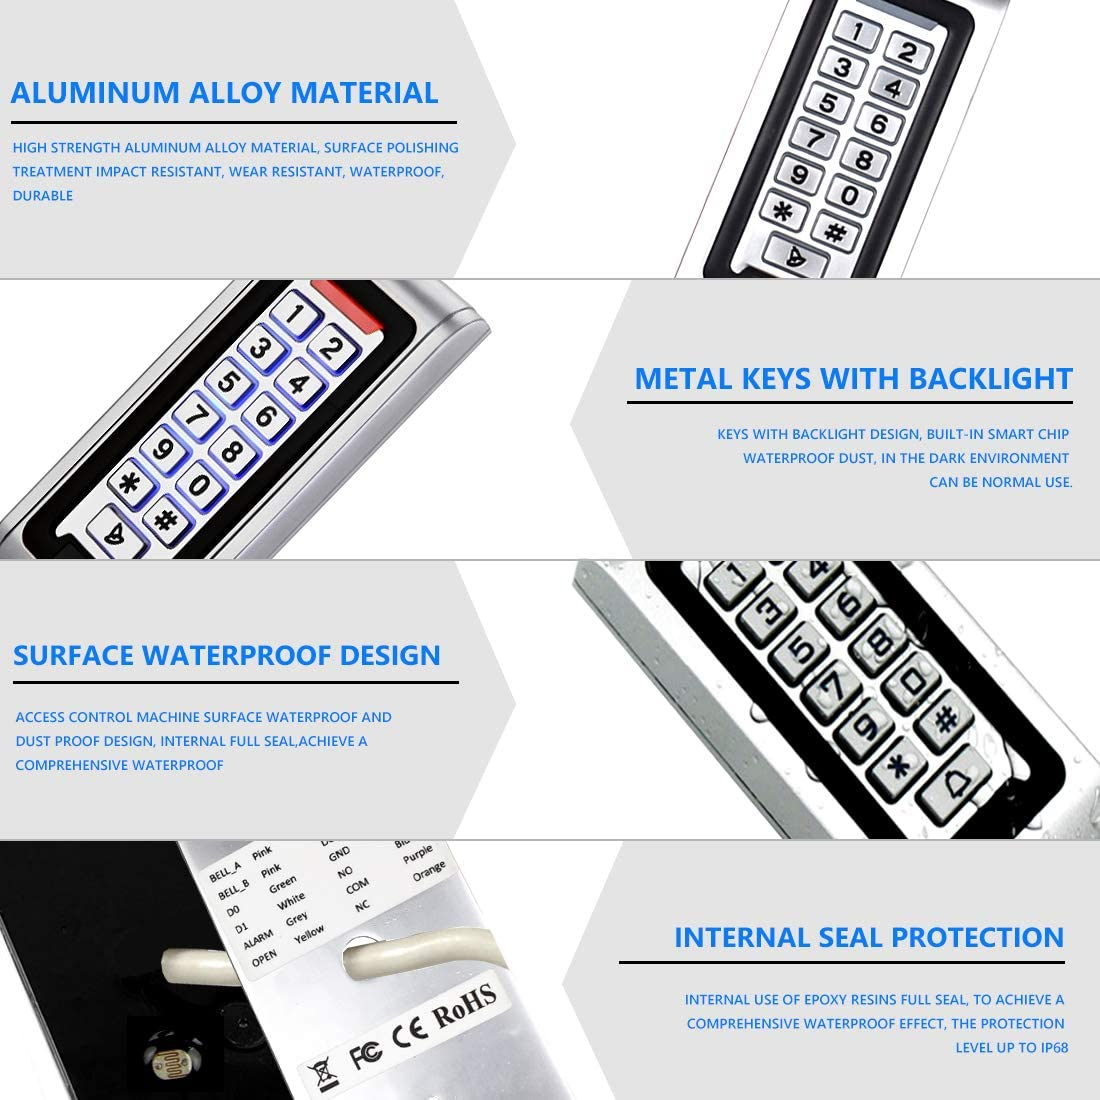 Support 2000 Users ID Card Reader Backlight Zinc Alloy Metal Case AMOCAM Door Access Control System Stand-Alone Password Keypad Waterproof 5PCS Proximity RFID 125Khz Key Fobs Keychains